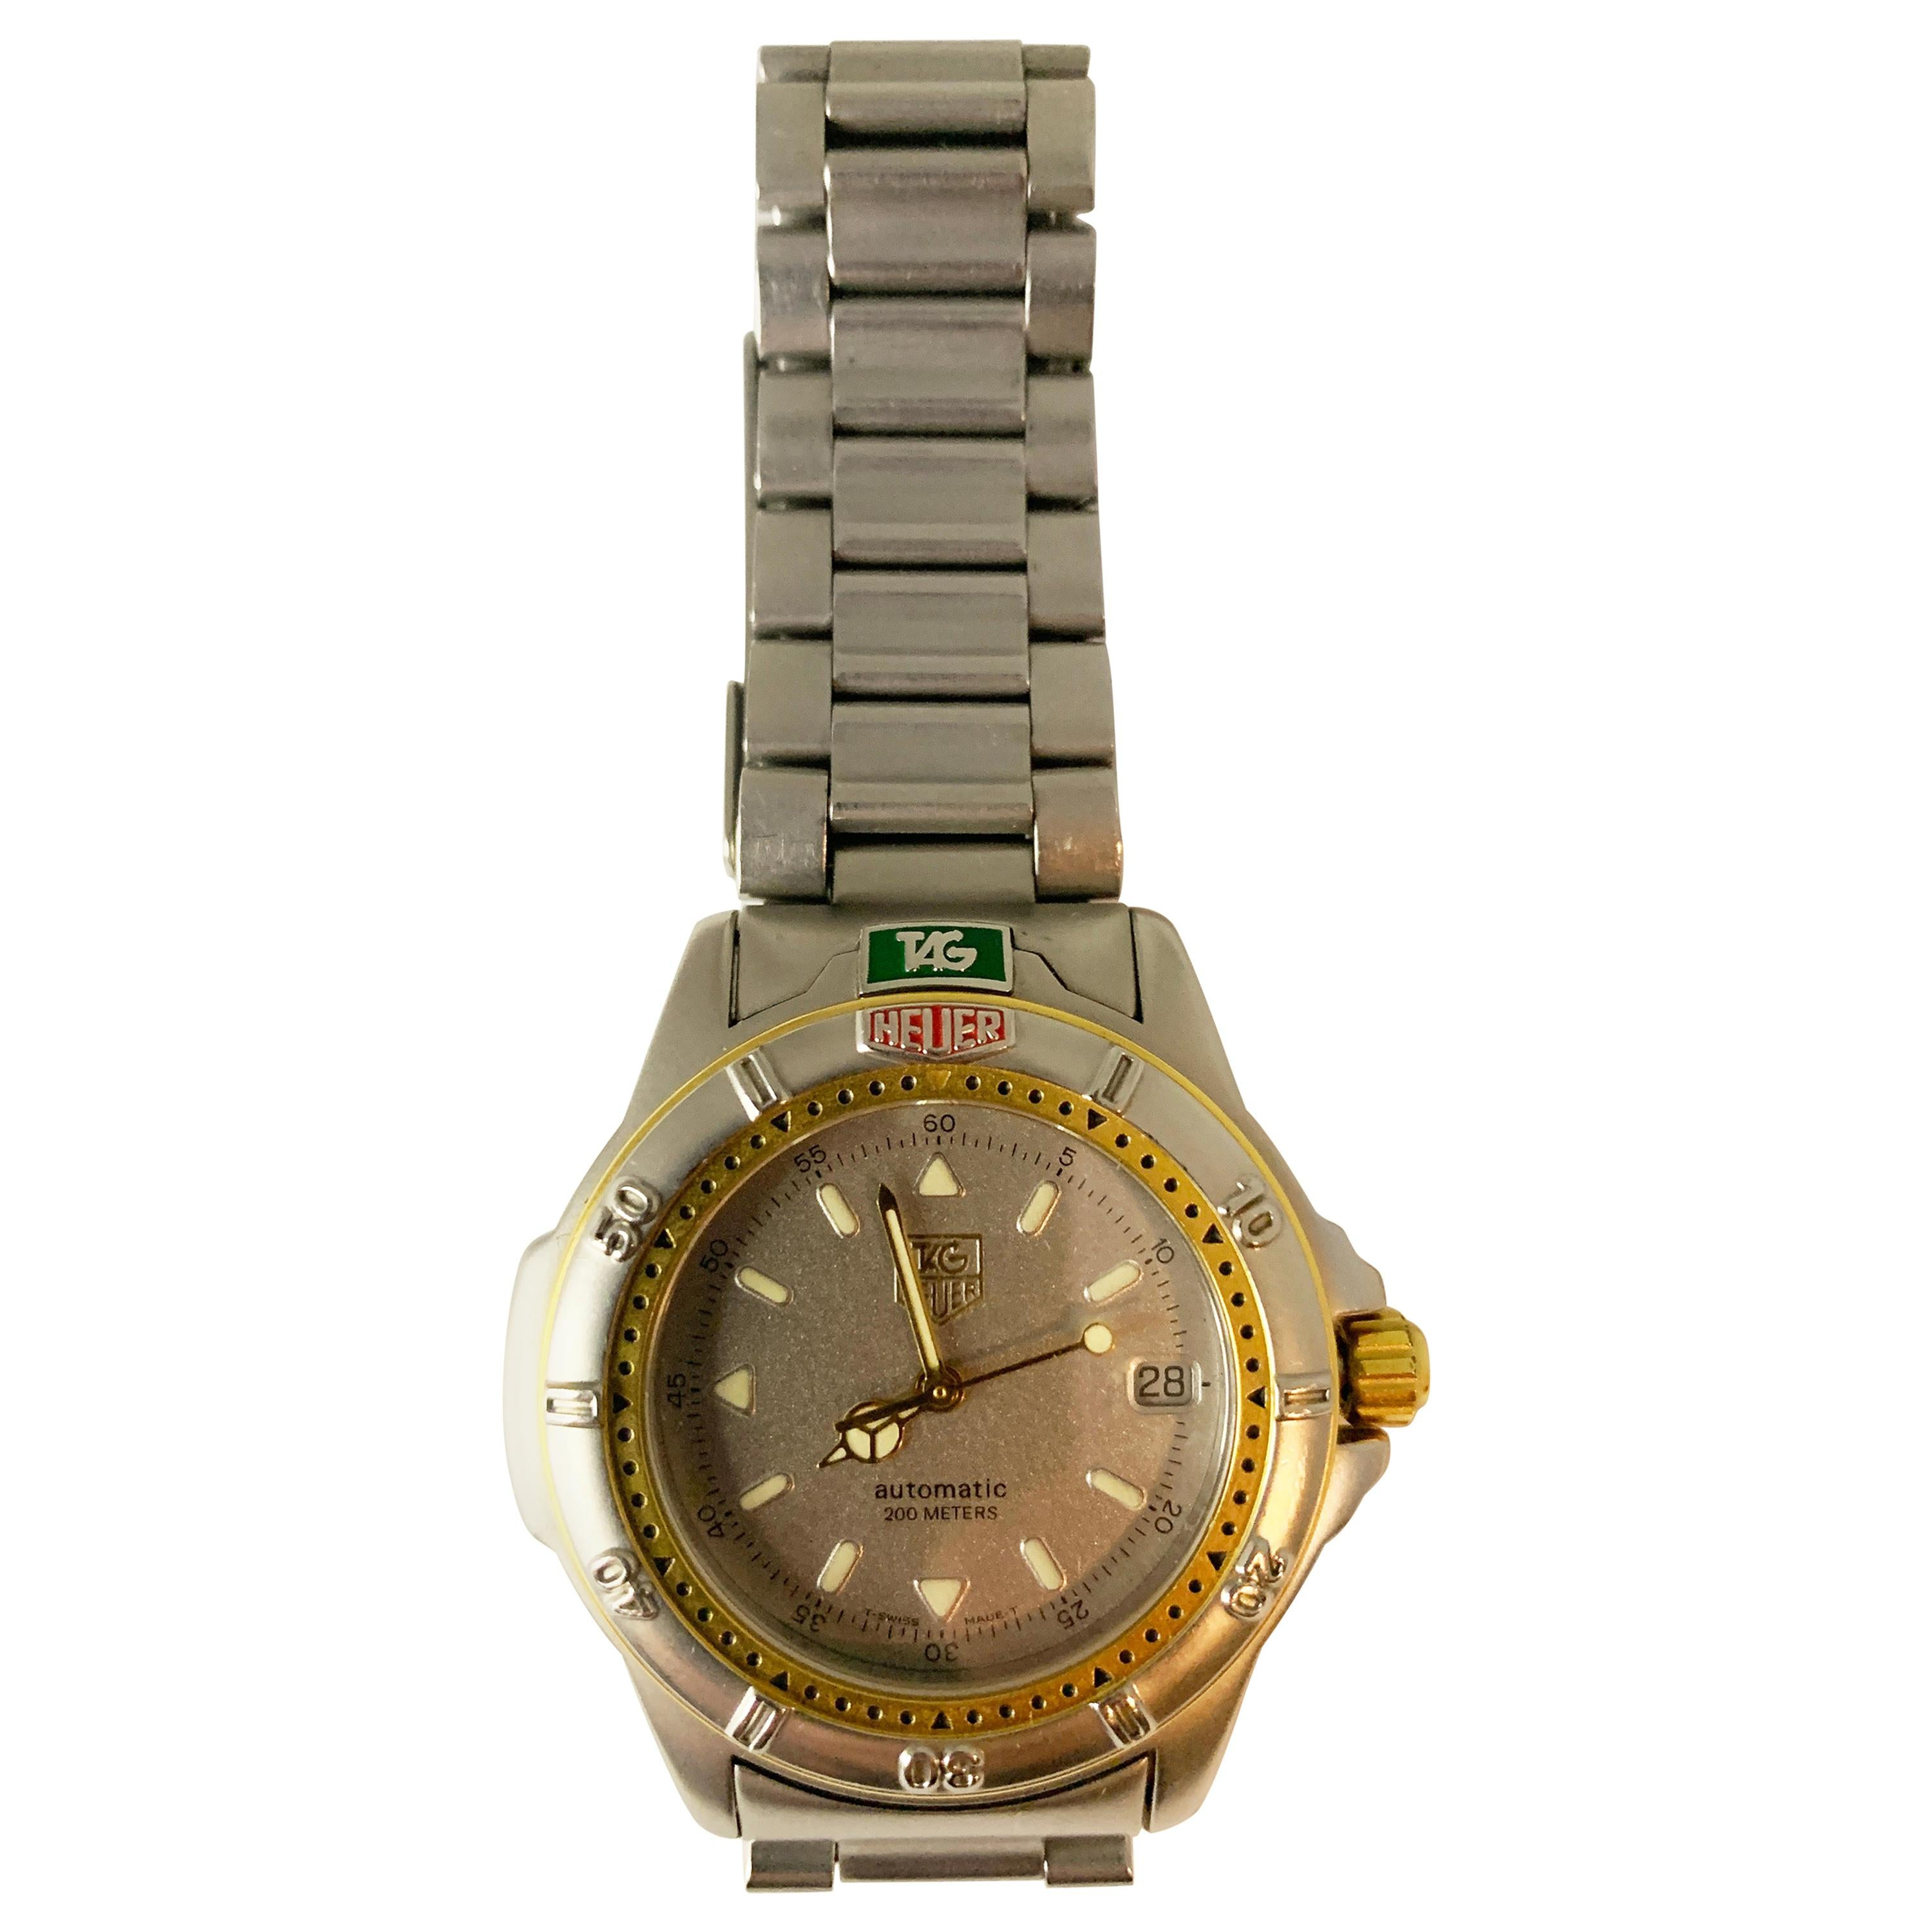 TAG Heuer Automatic 200M